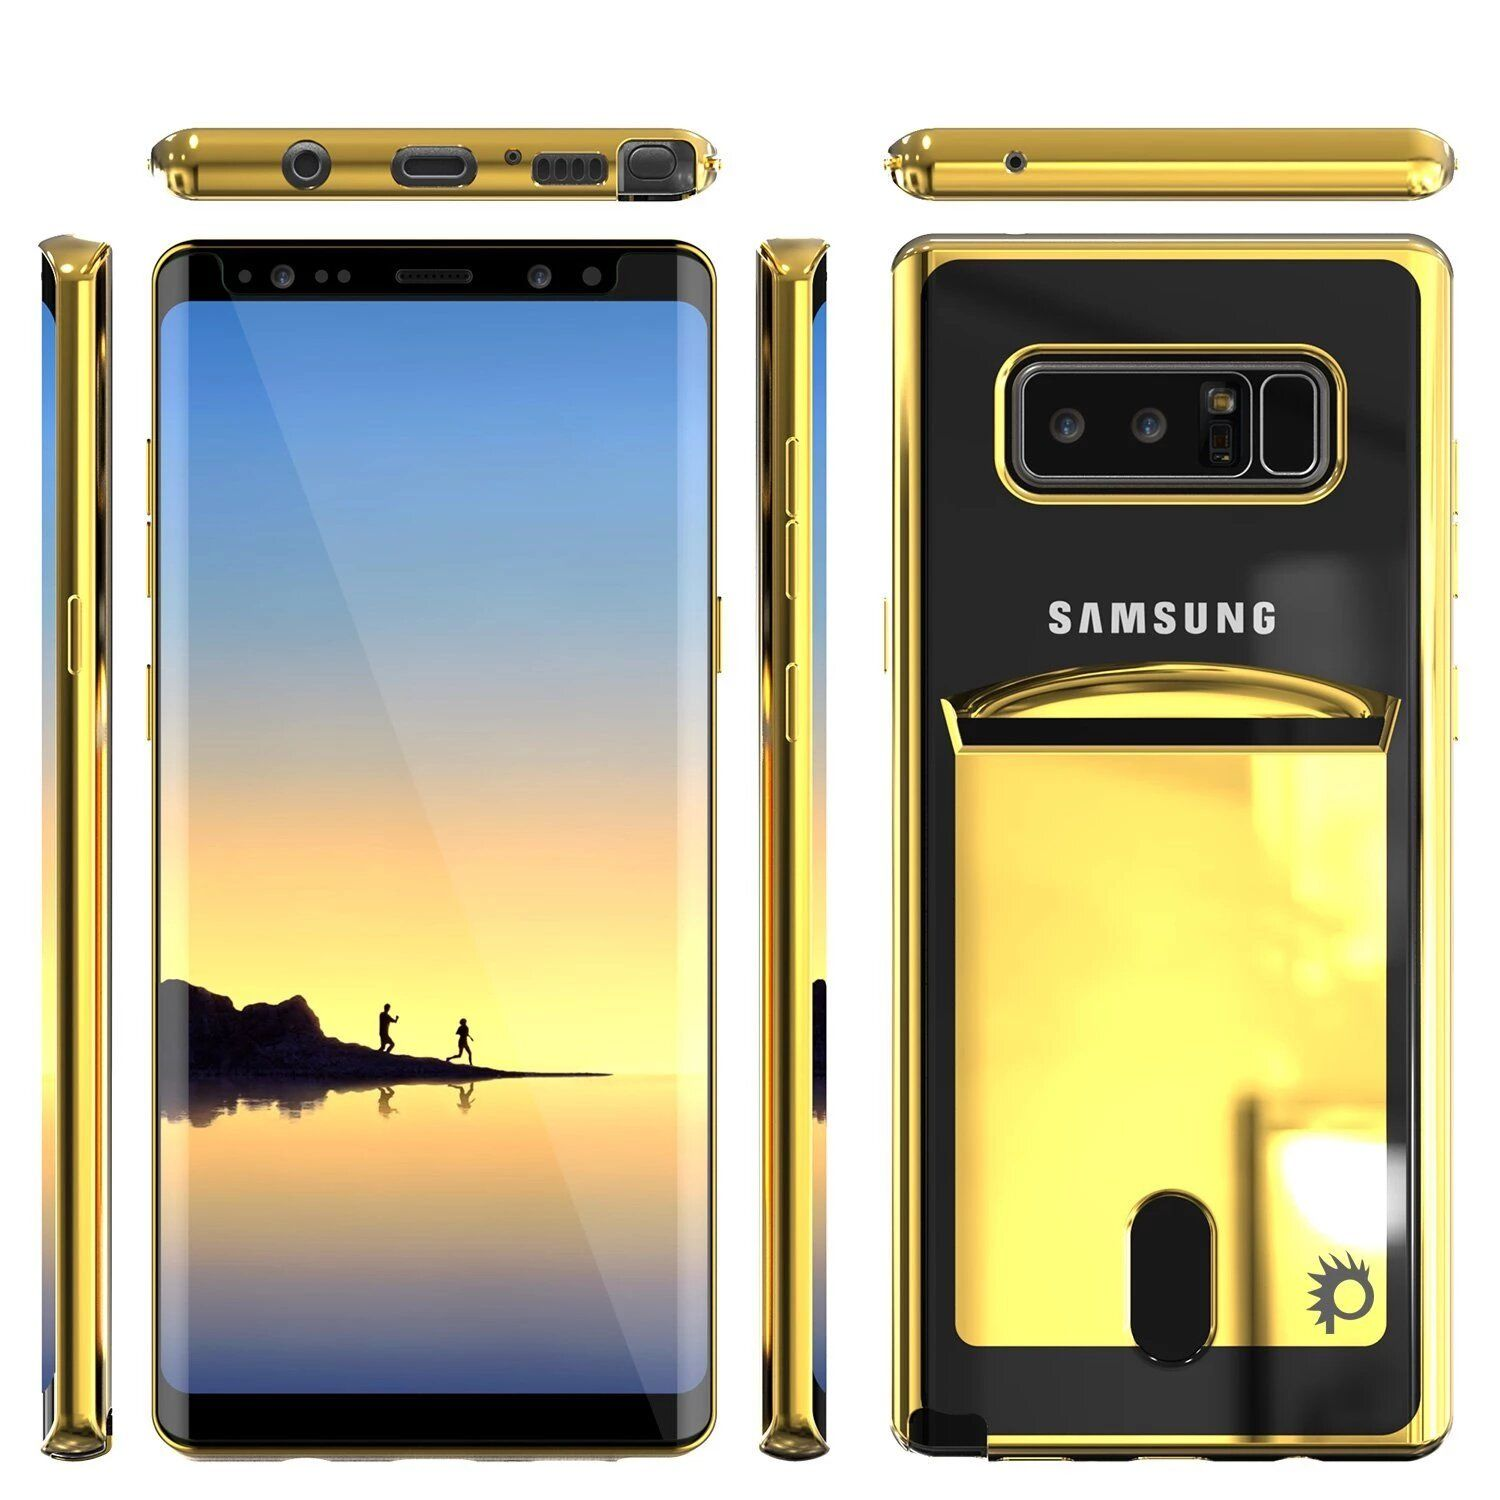 Galaxy Note 8 Case Punkcase Lucid Gold Series Card Slot Shield Screen Protector Ultra Fit Galaxy Note 8 Screen Protector Samsung Galaxy Note 8